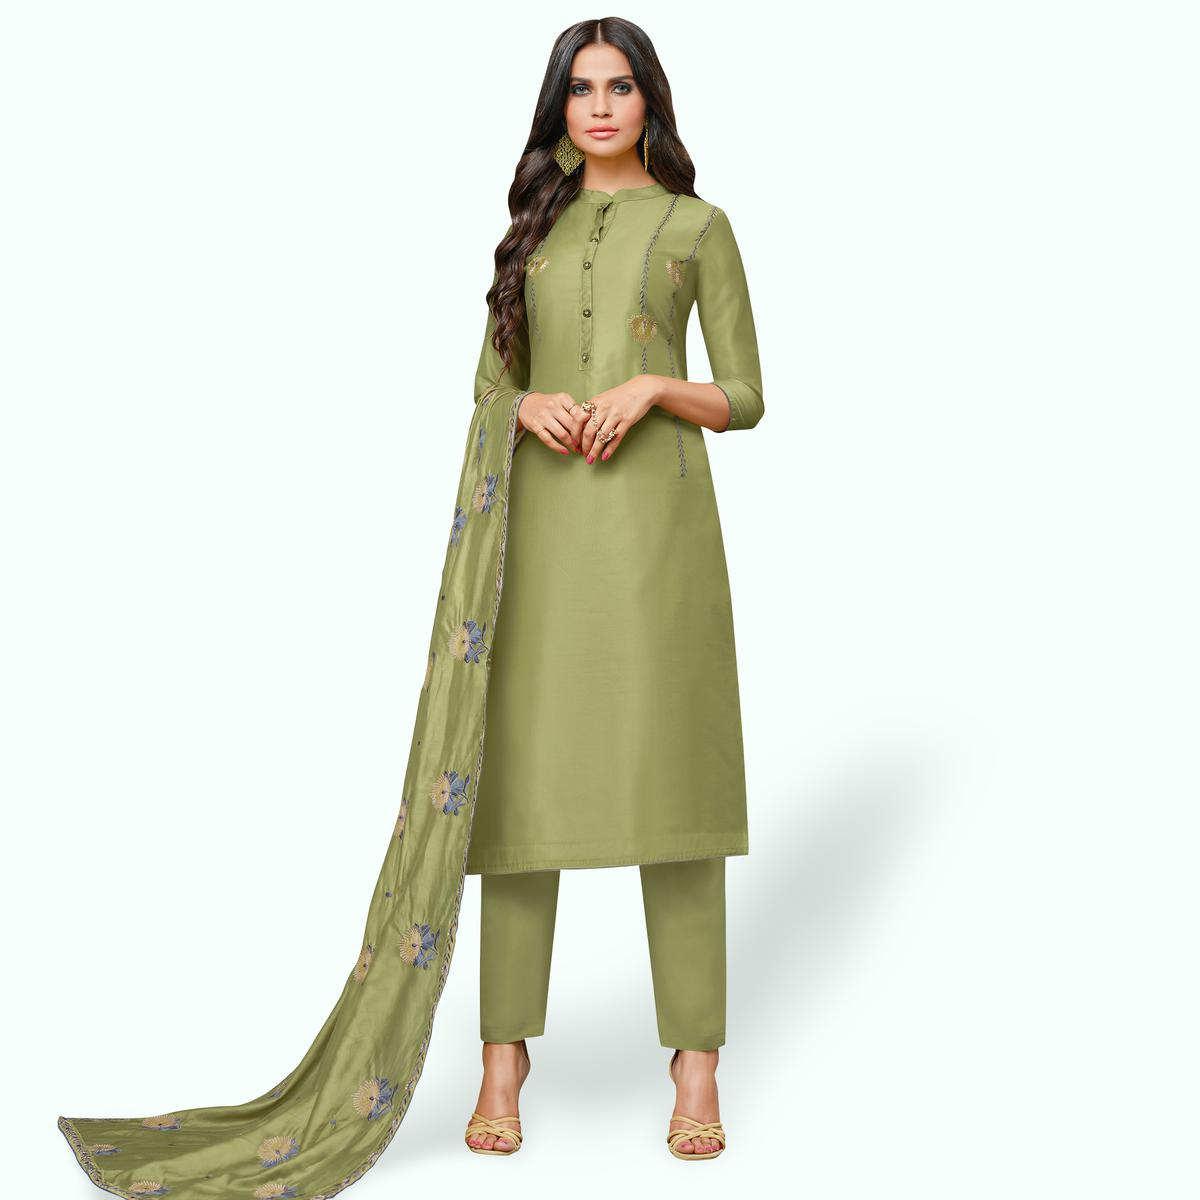 Engrossing Olive Green Colored Party Wear Cotton Silk Salwar Suit